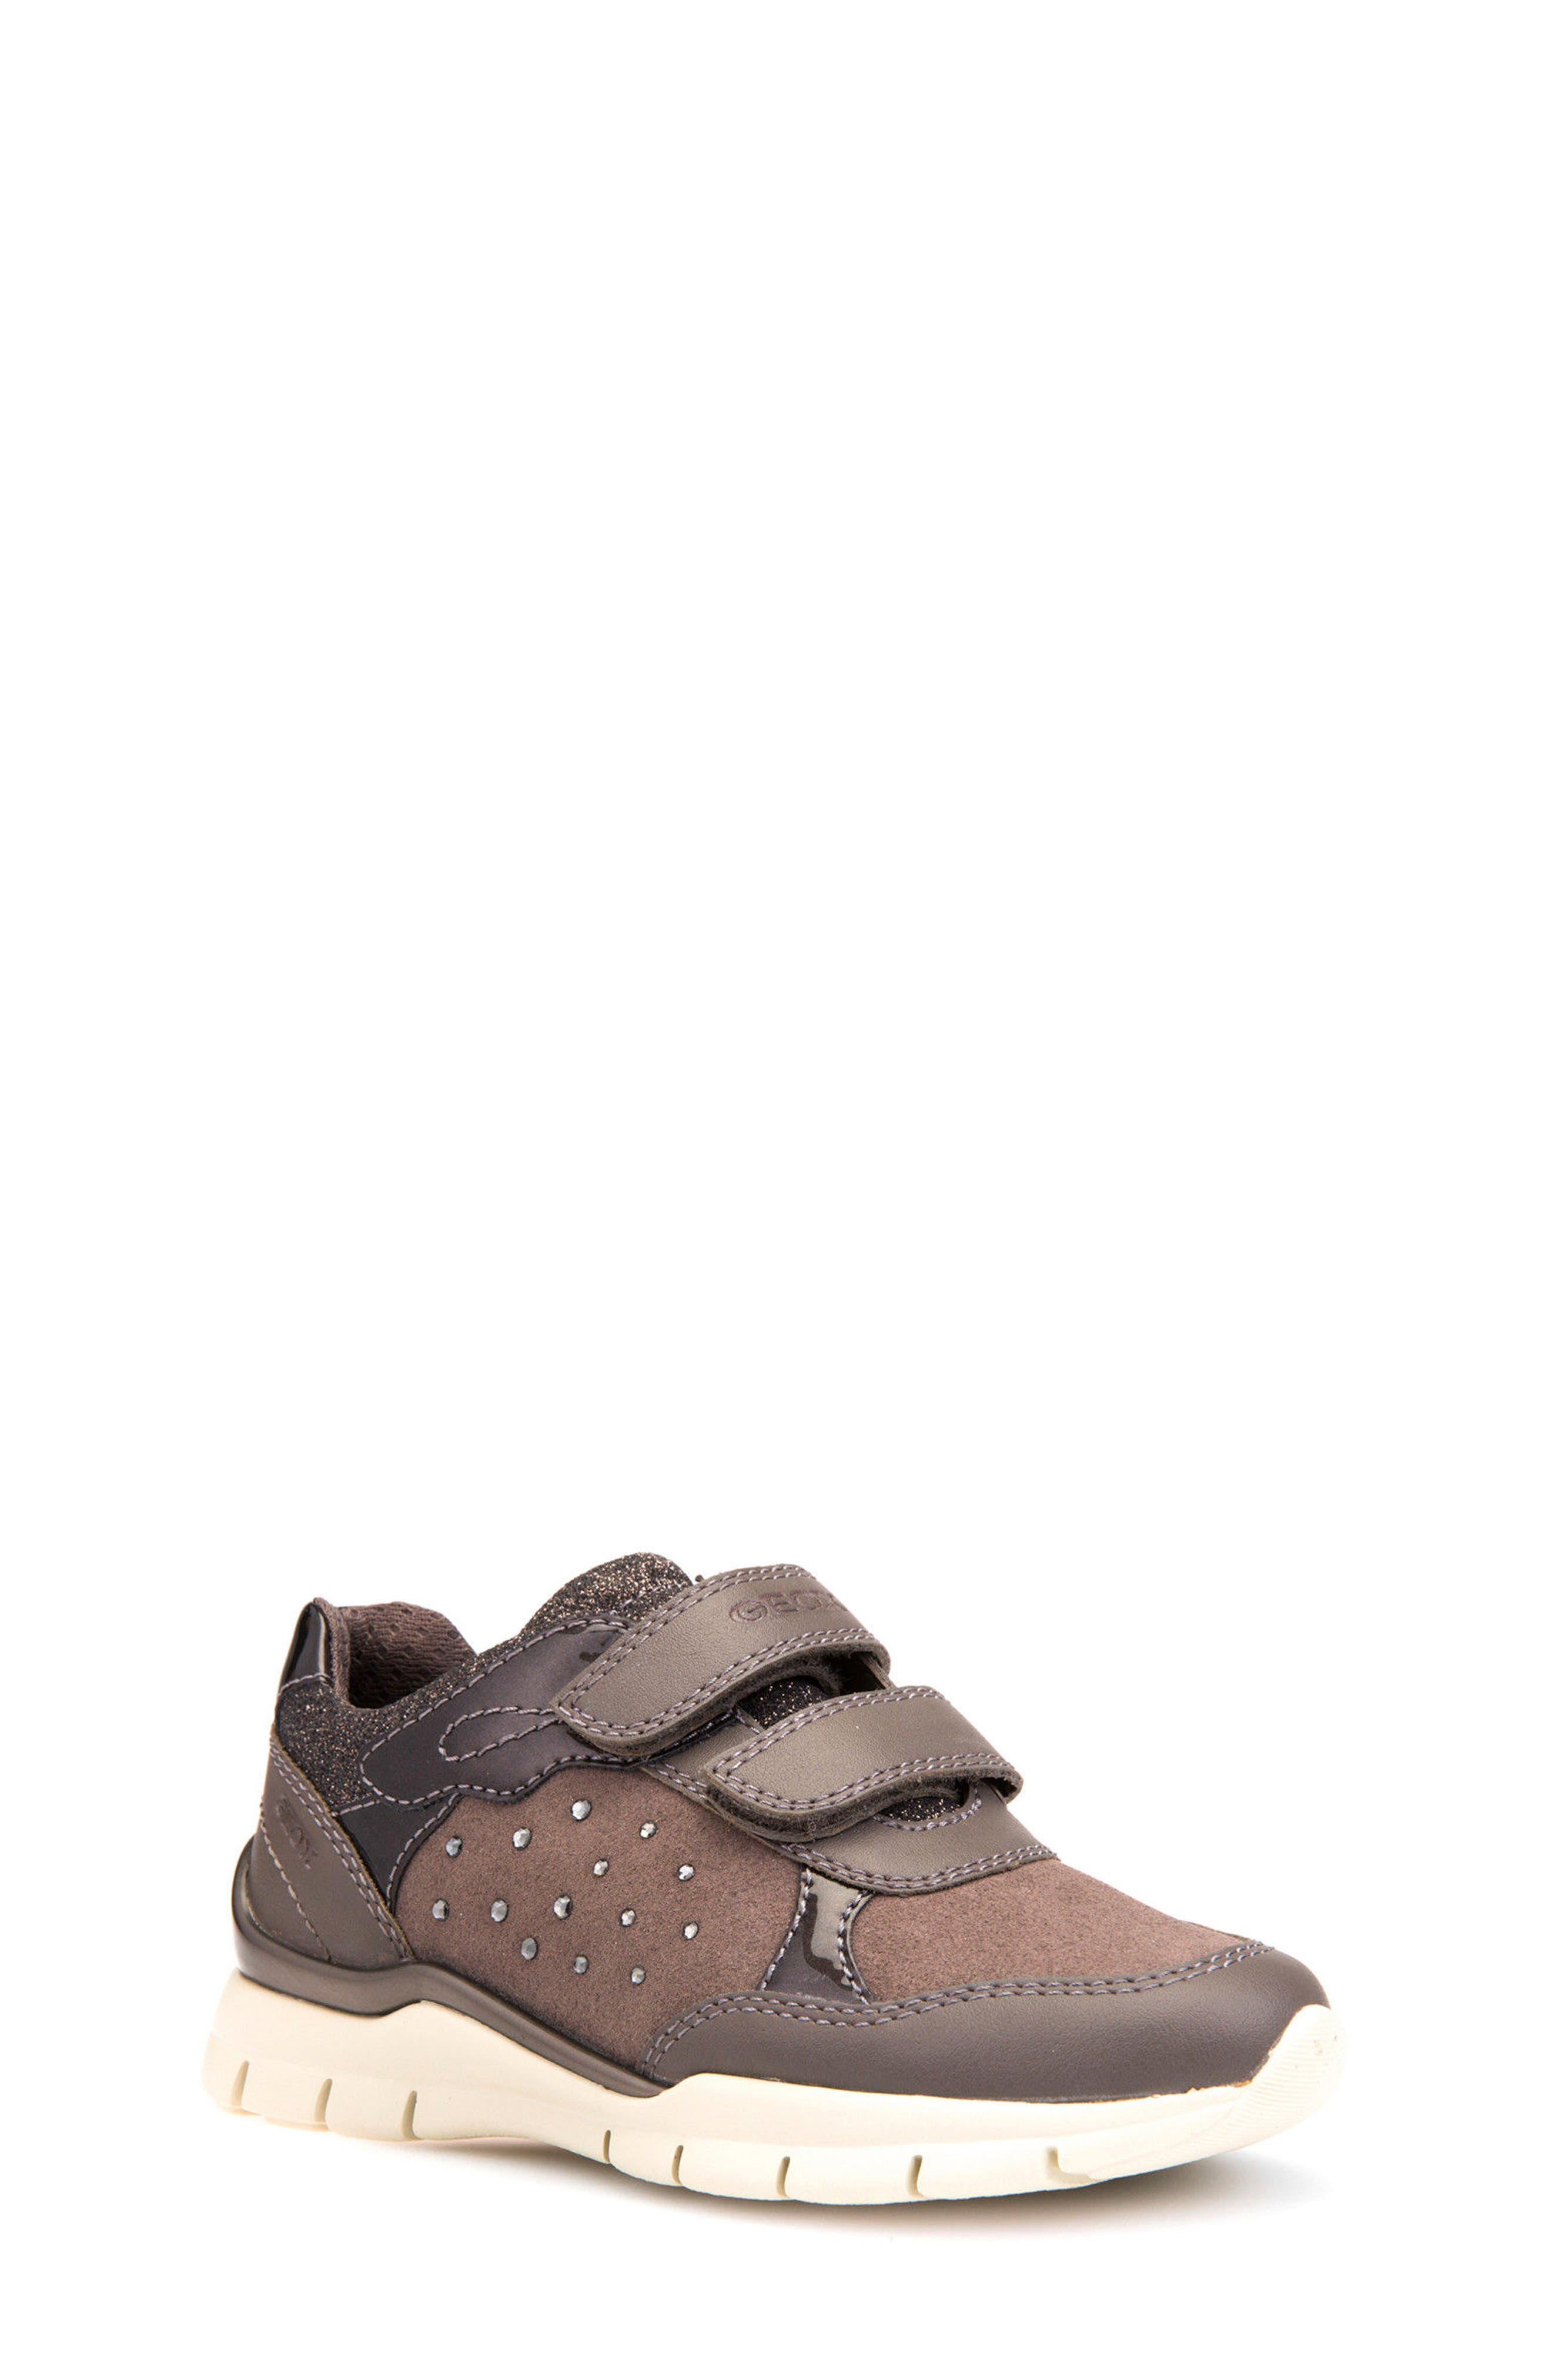 Sukie Sneaker,                             Main thumbnail 1, color,                             Dark Beige